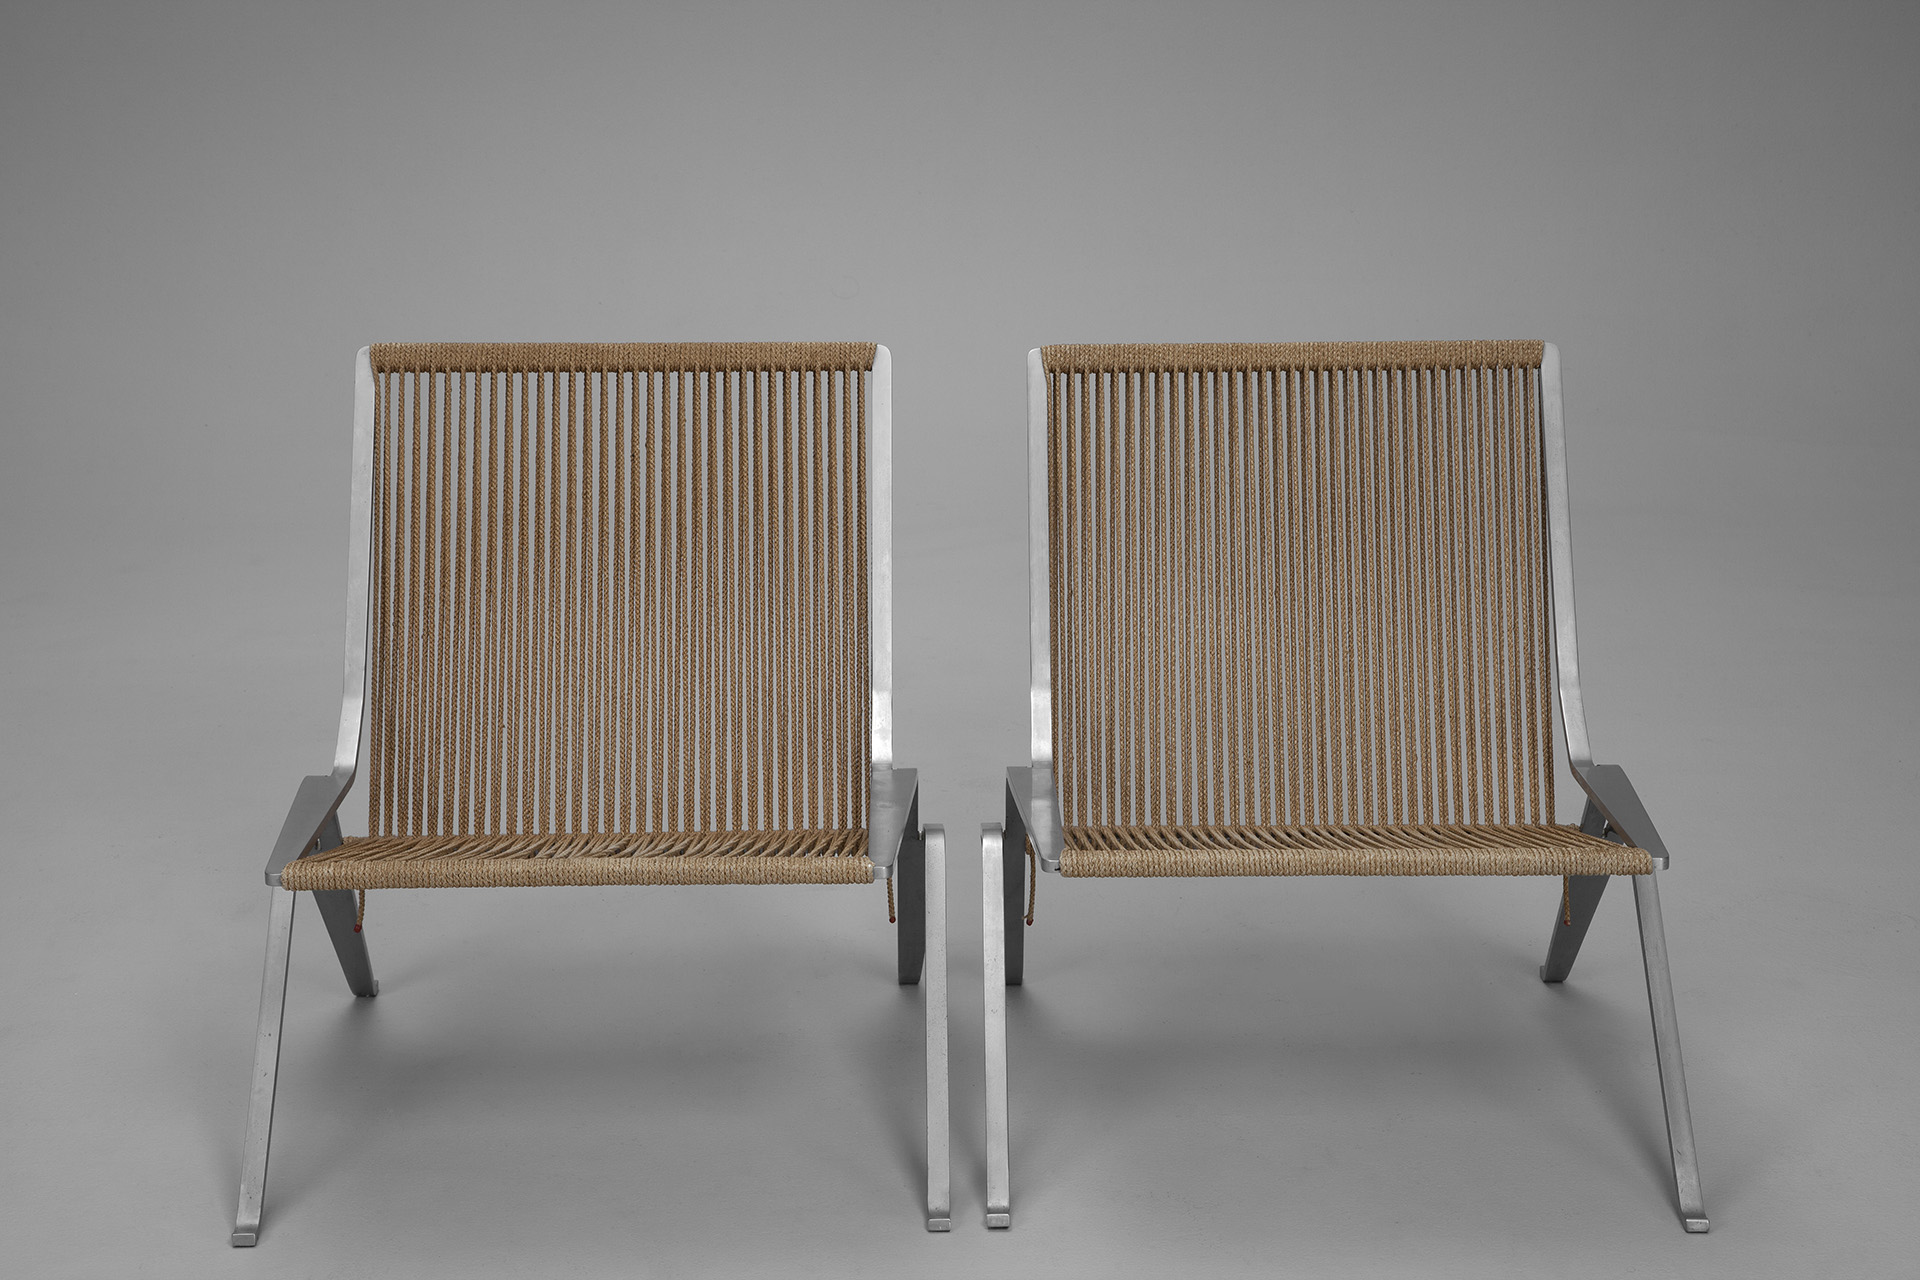 Pair of PK-25 Chairs